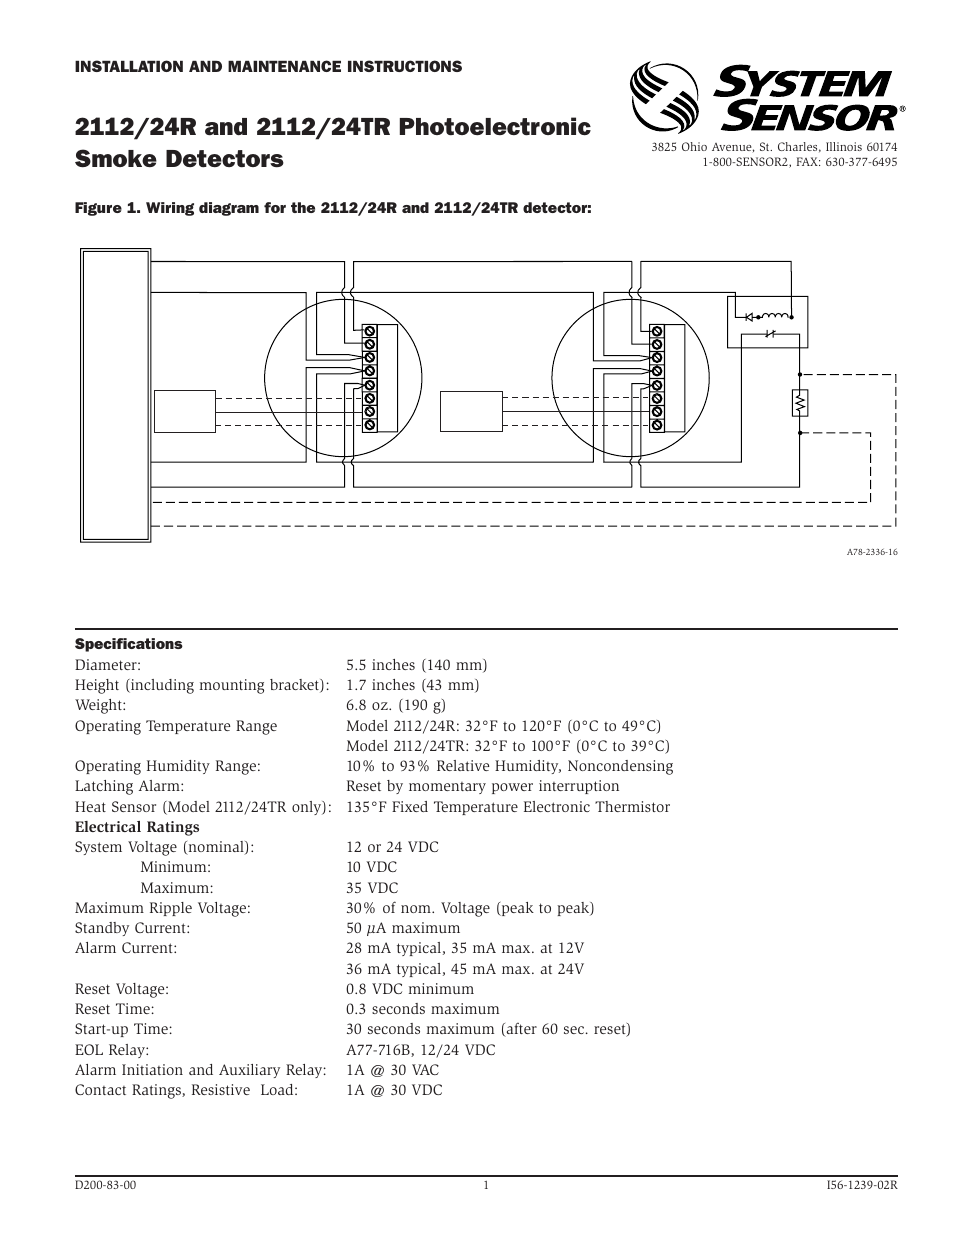 system sensor 2112_24r and 2112_24tr photoelectronic page1 system sensor 2112_24r and 2112_24tr photoelectronic user manual 5R55E Transmission Wiring Diagram at panicattacktreatment.co